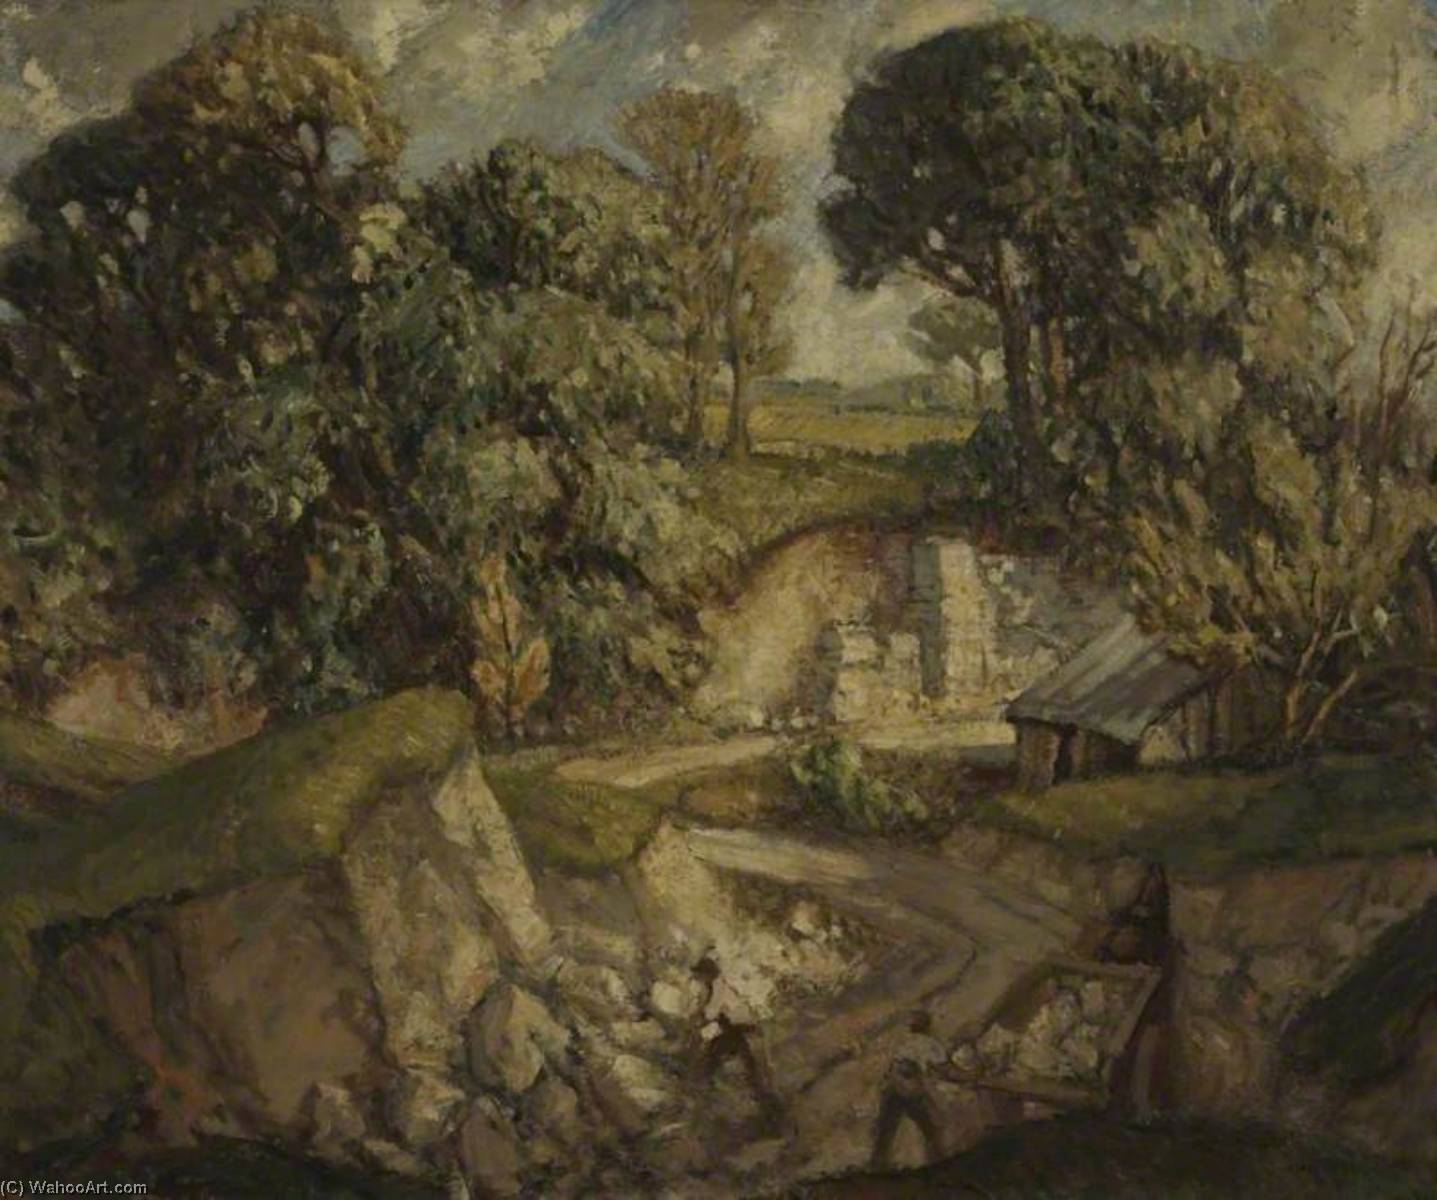 Dorset Chalk Quarry, Oil On Canvas by Harry Morley (1881-1943)